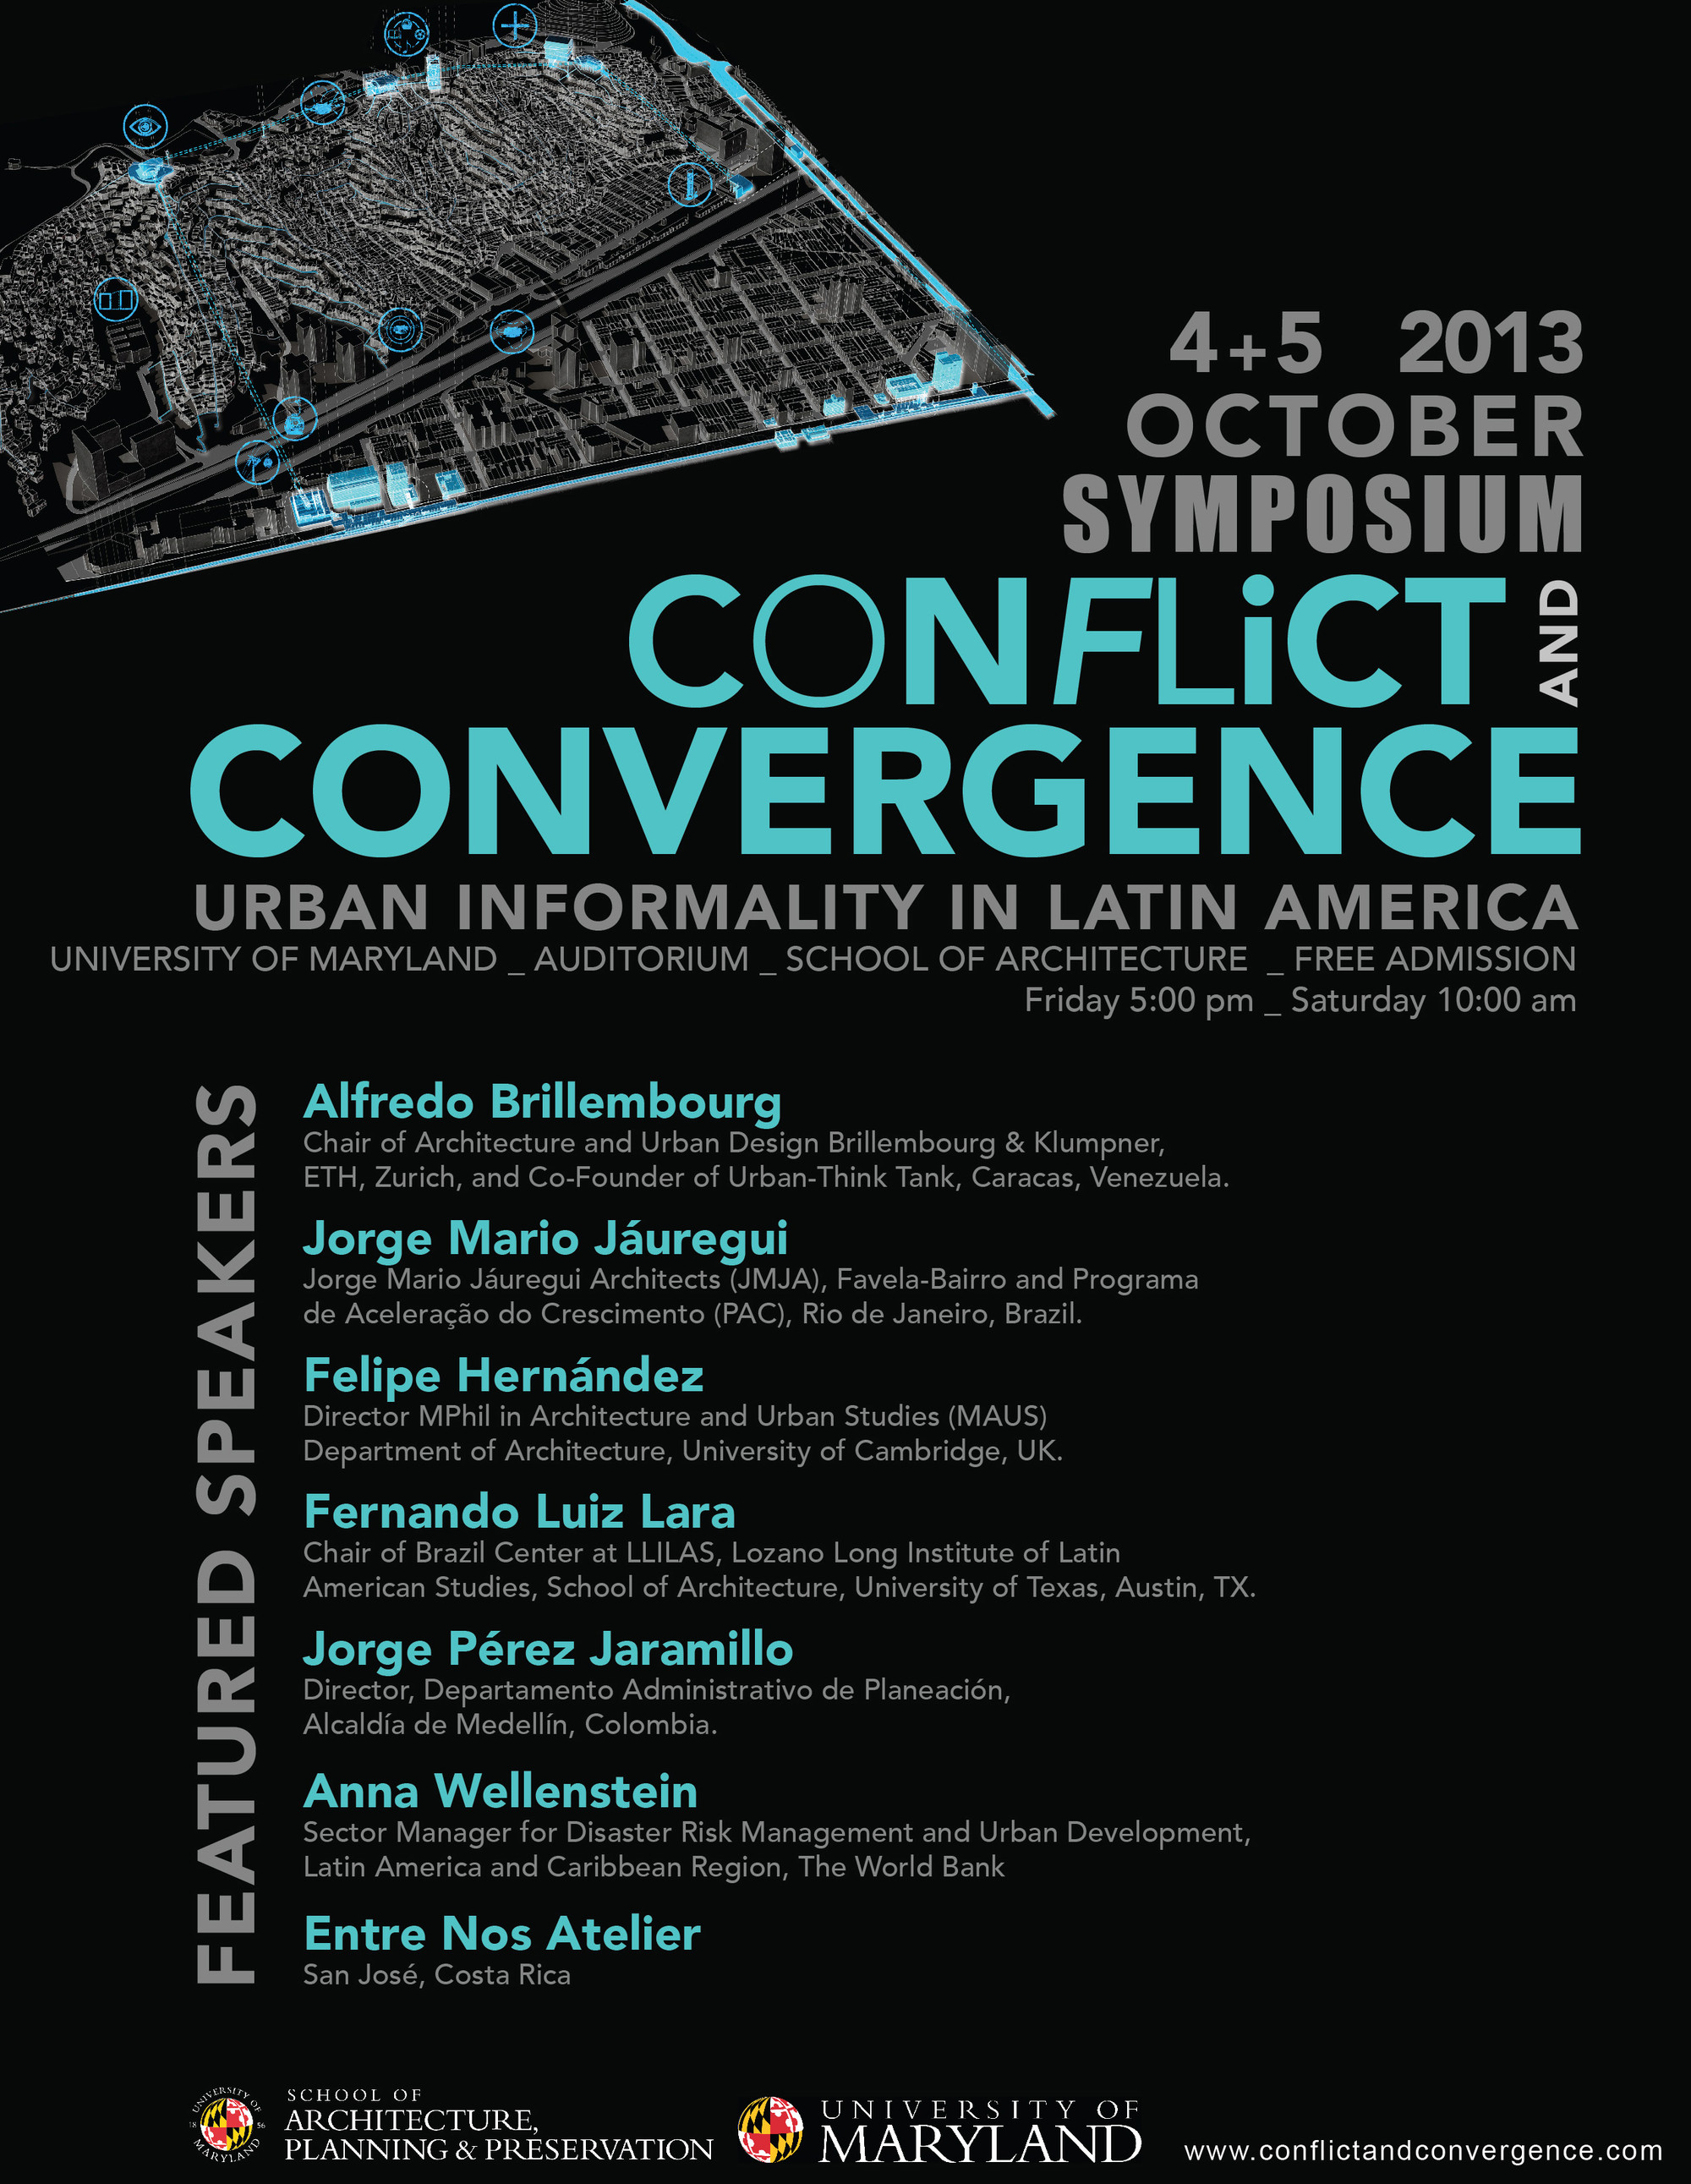 Poster design for symposium -  Conflict And Convergence Urban Informality In Latin America Symposium